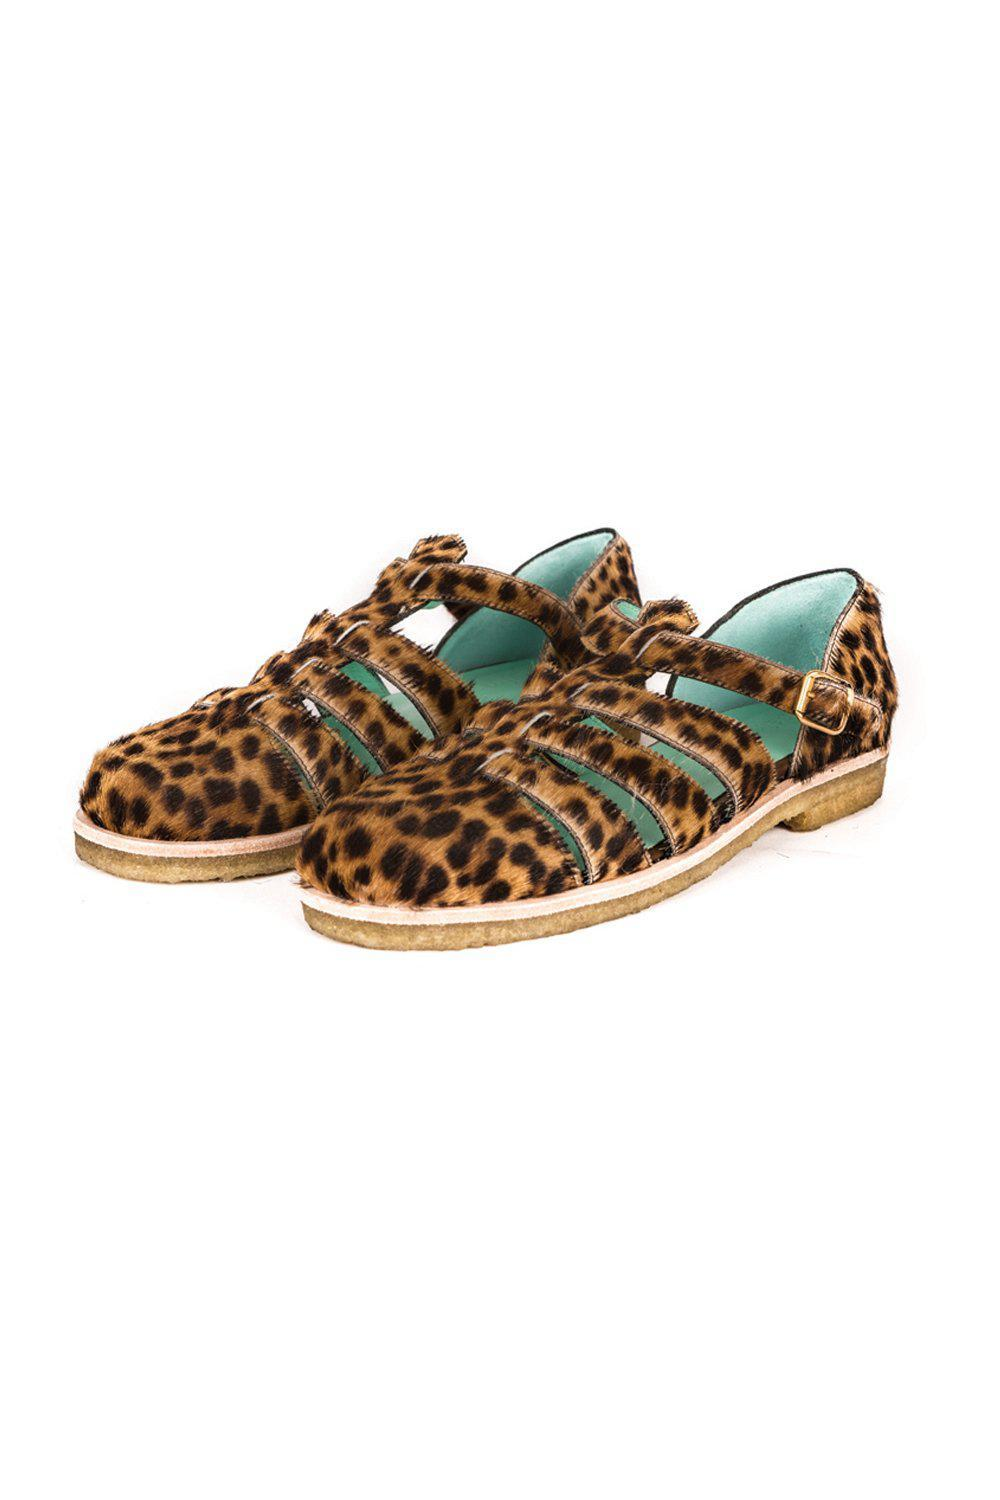 Ricky sandals in leopard printed leather